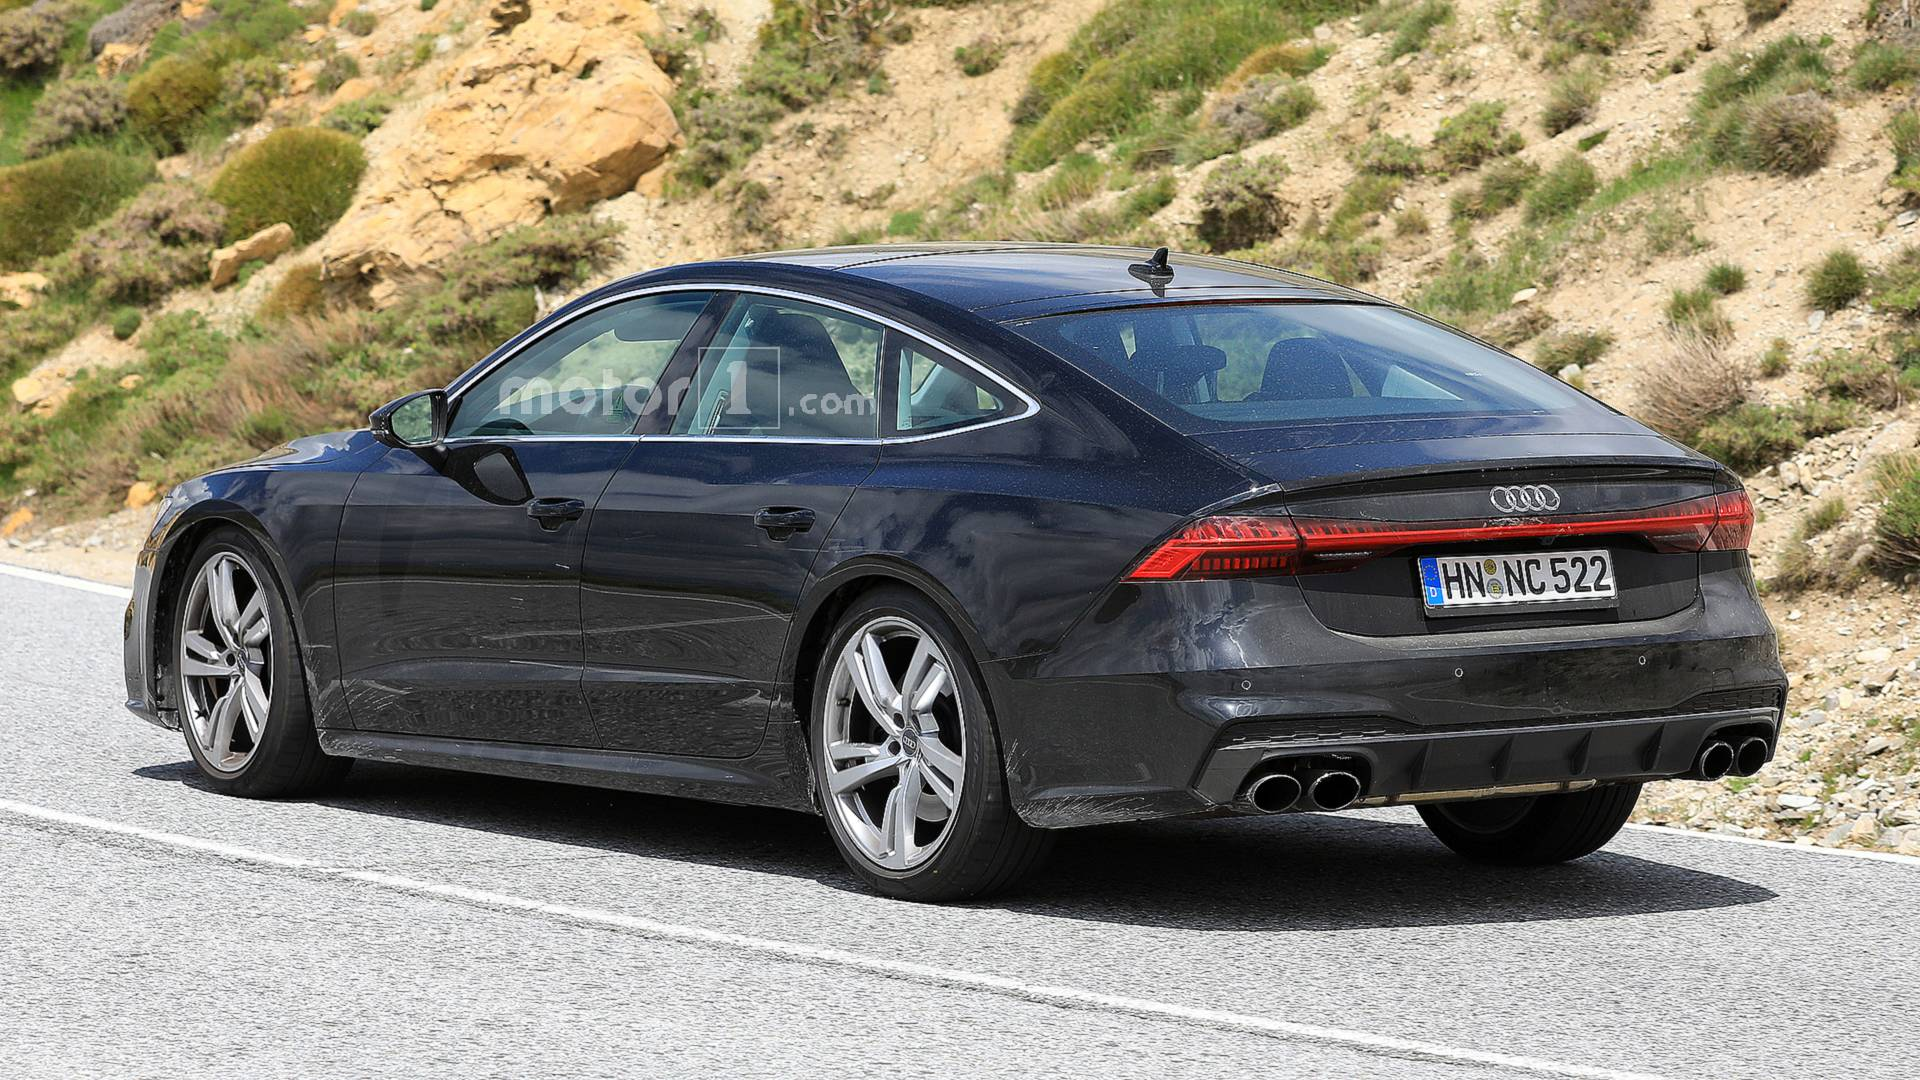 51 Best 2020 All Audi A7 Wallpaper